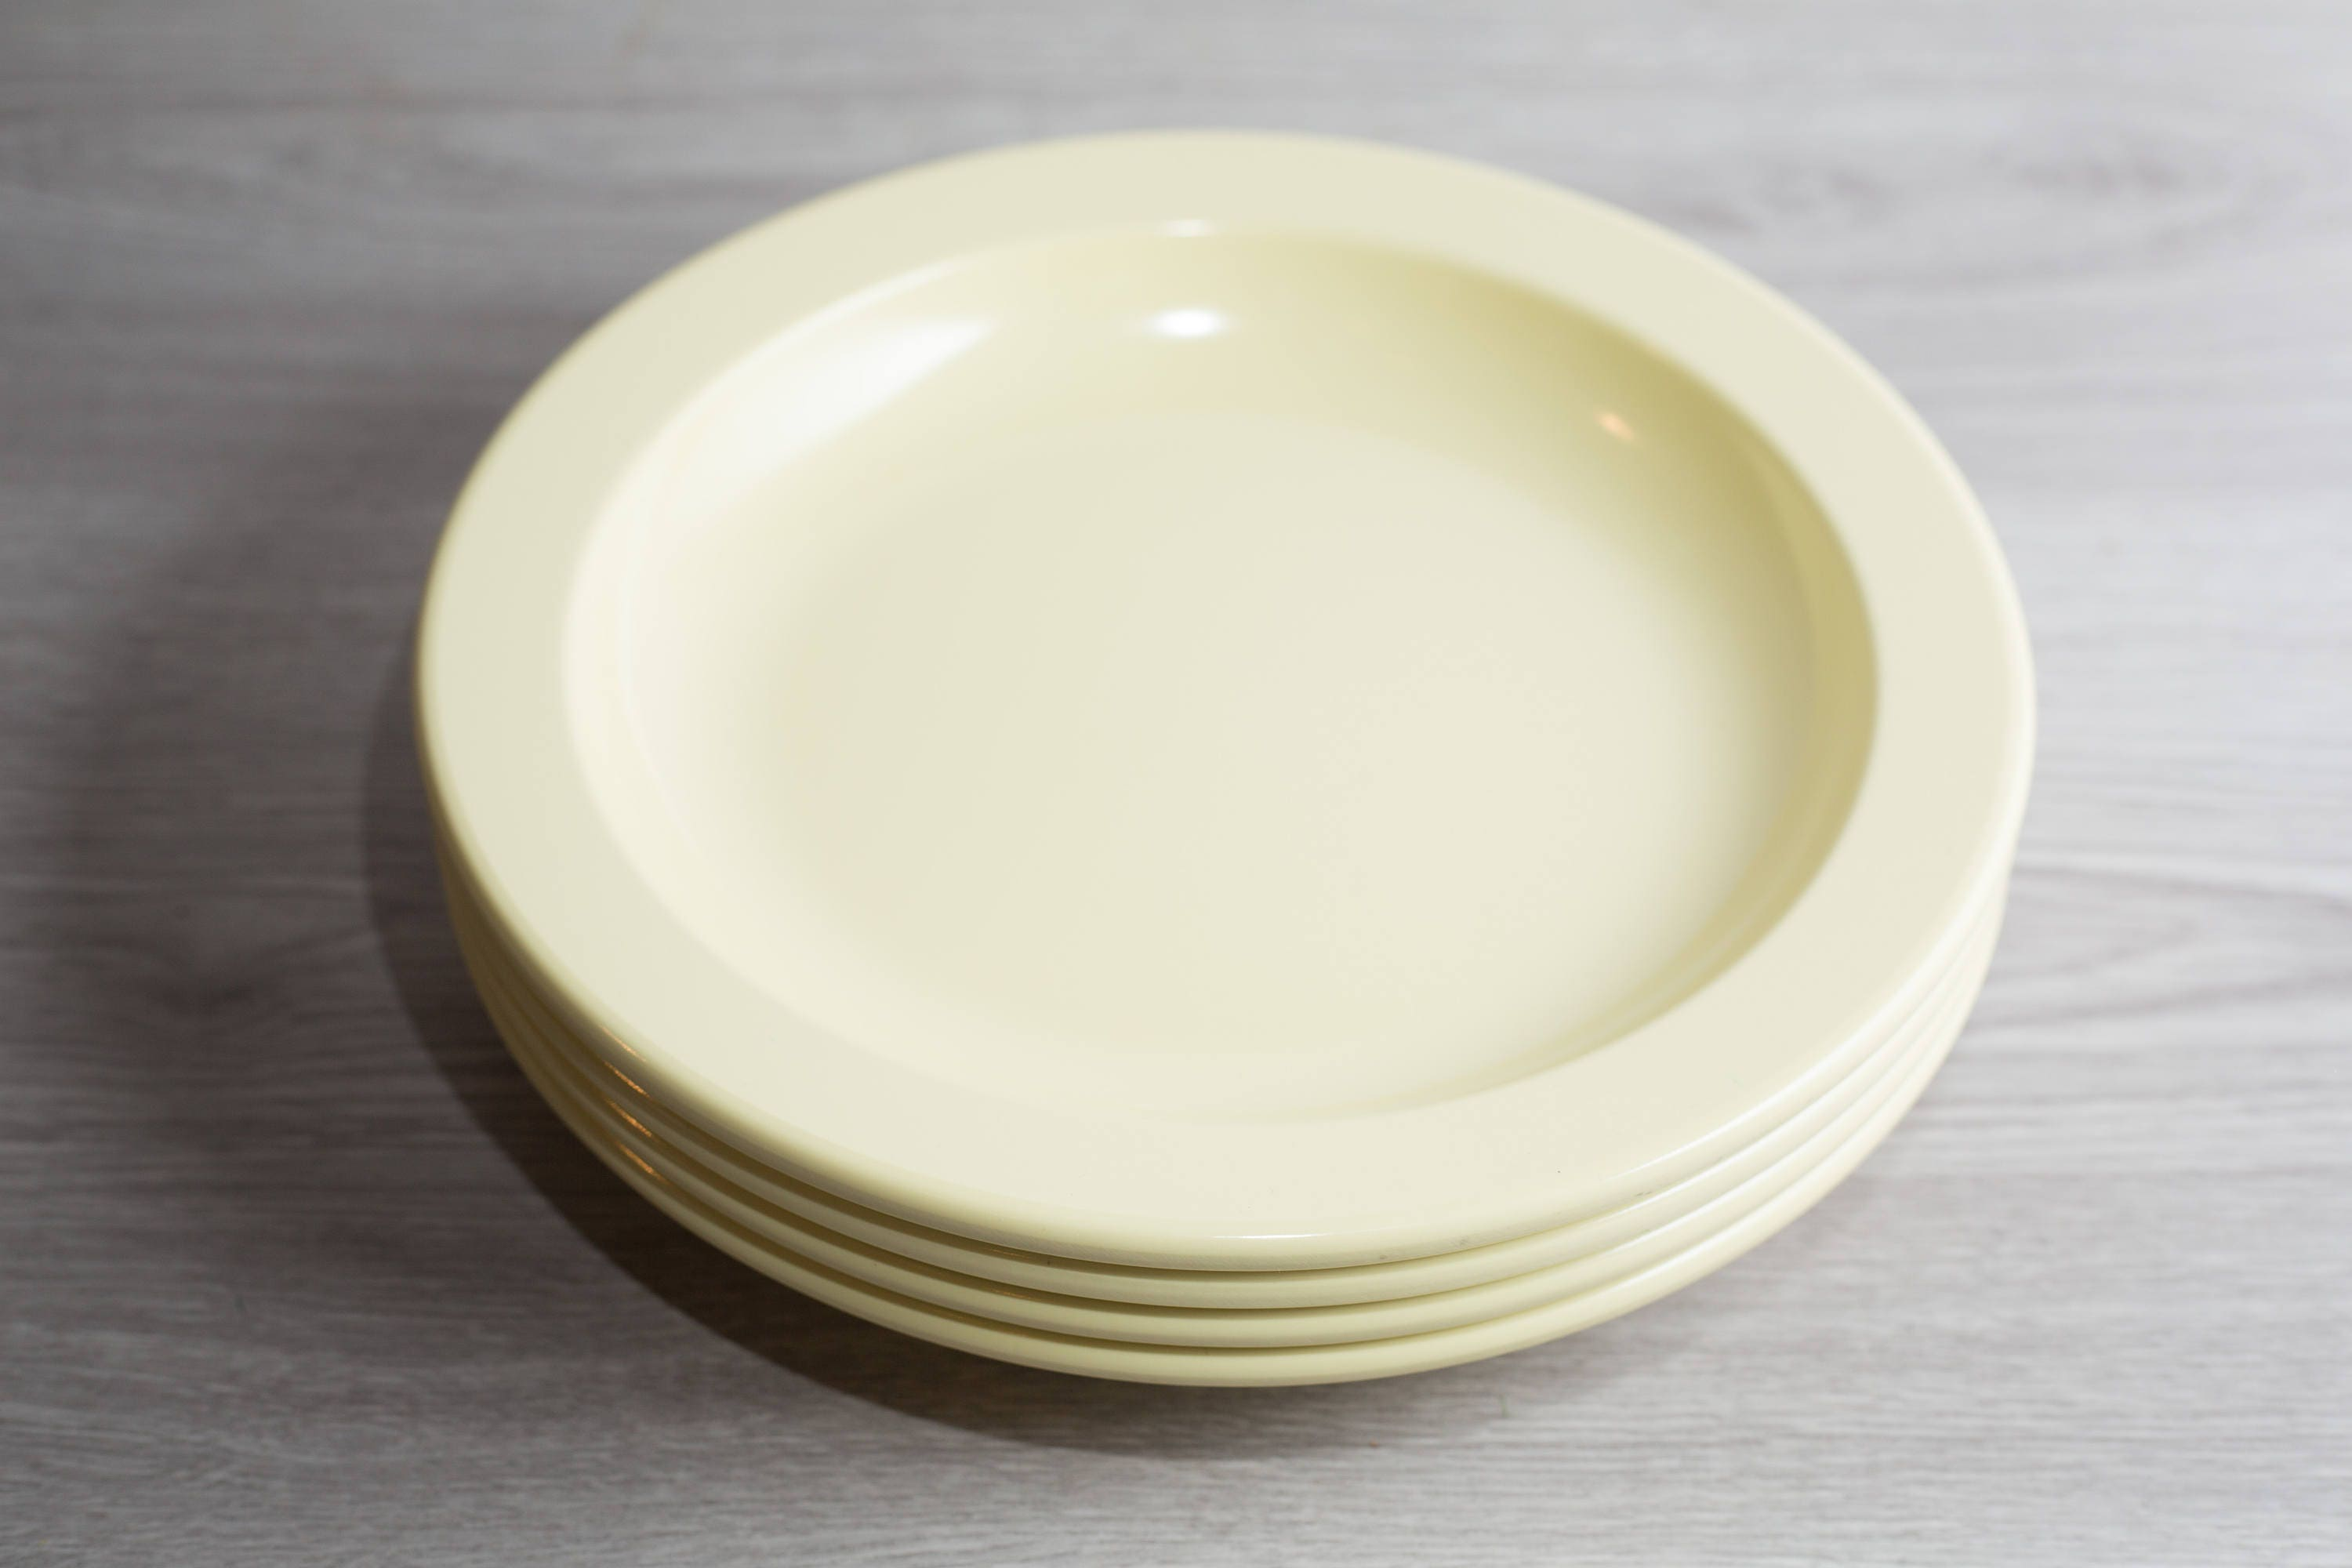 Vintage Mistral Melamine Plates 4 piece Set of Soft Yellow Dinnerware Dinner Plates by Hamelin / Made in Canada / Pastel C&ing Bowls : dinner plates canada - pezcame.com